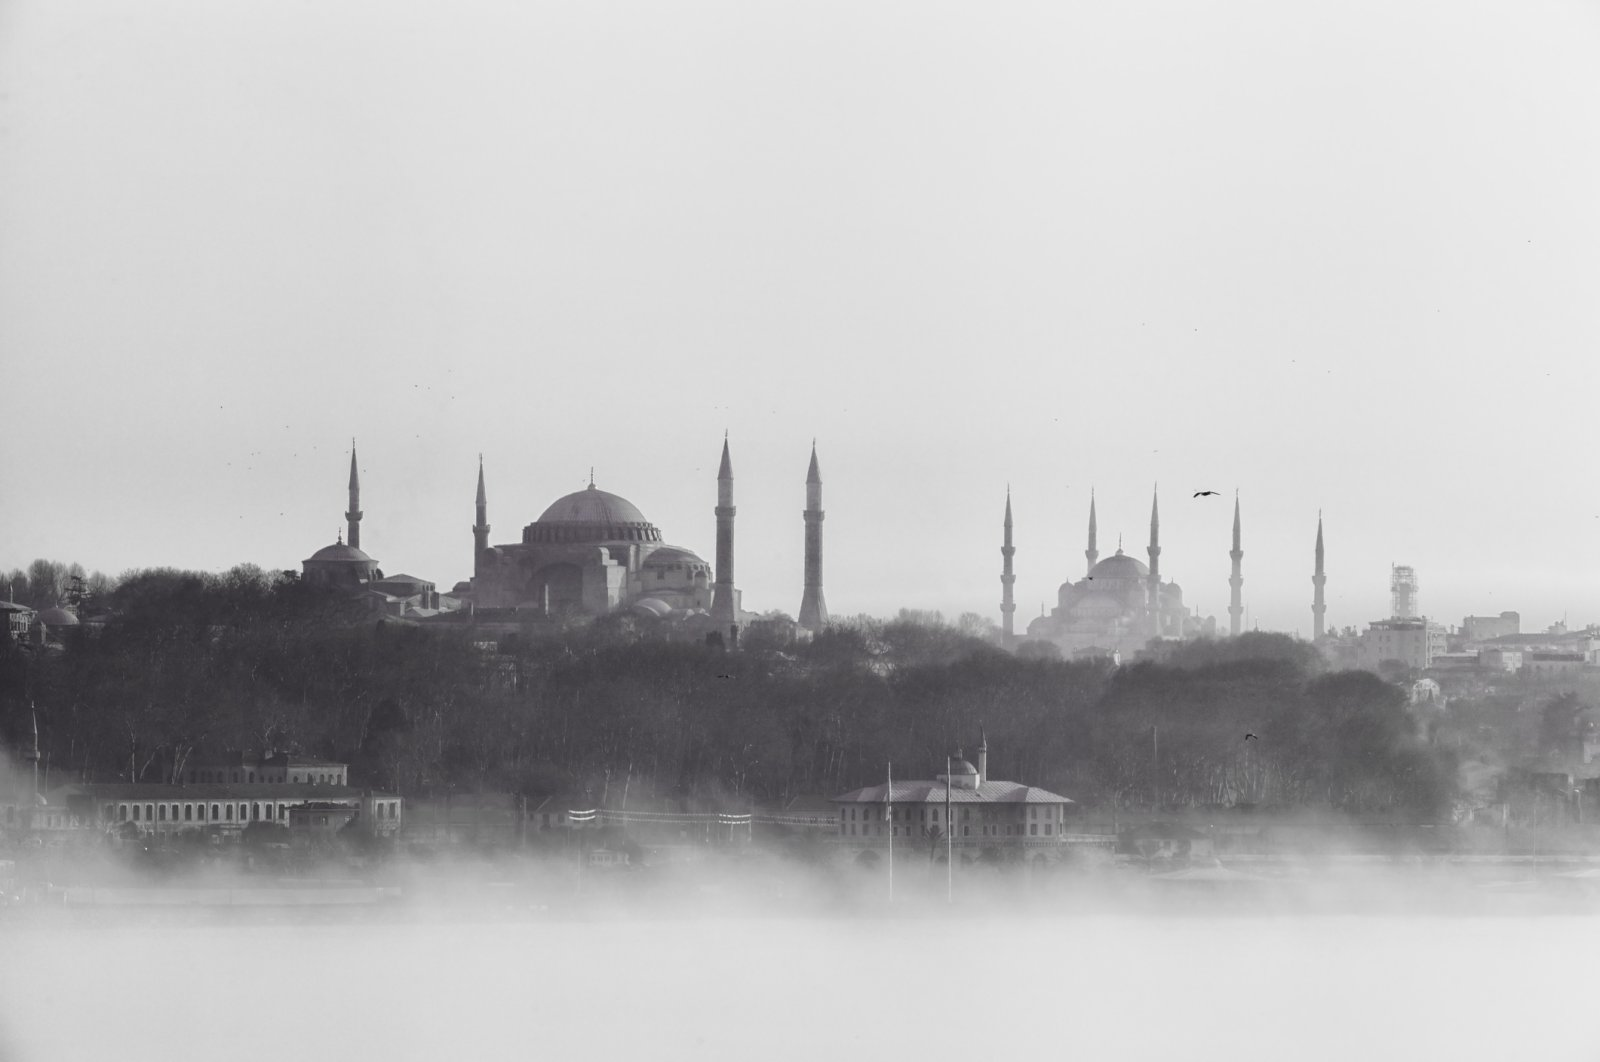 Vintage photograph shows the Hagia Sophia and Blue Mosque in Istanbul on a foggy day. (iStock Photo)